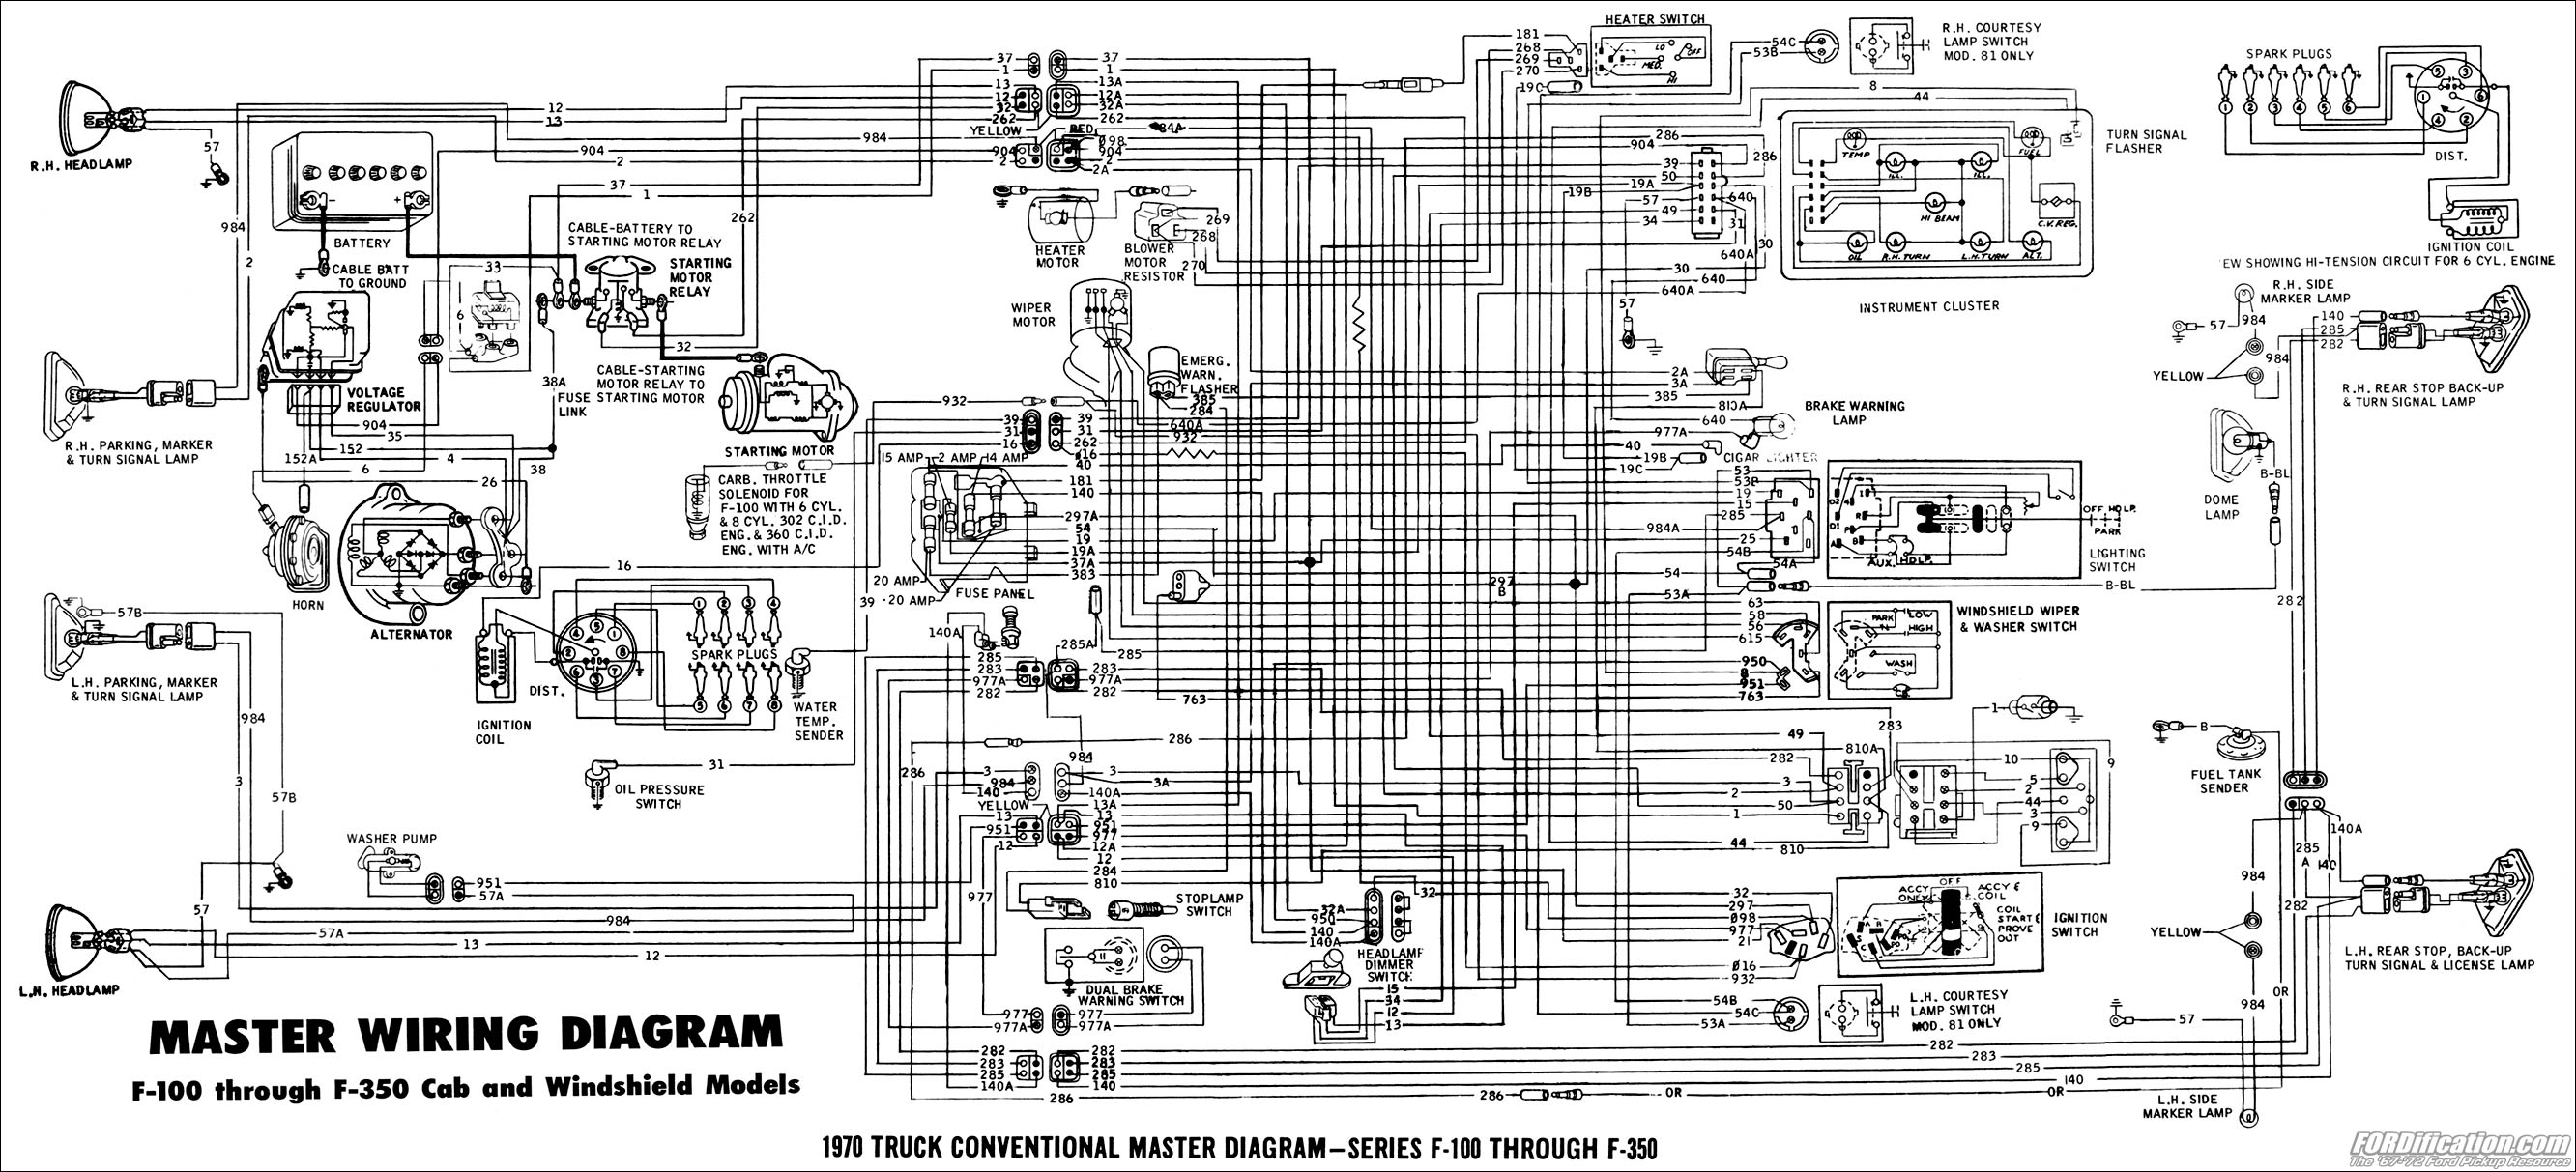 2002 F350 Wiring Schematic Reinvent Your Diagram F150 Cab Fuse Panel 1970 Ford F 250 Detailed Schematics Rh Keyplusrubber Com Transmission For 2004 Box